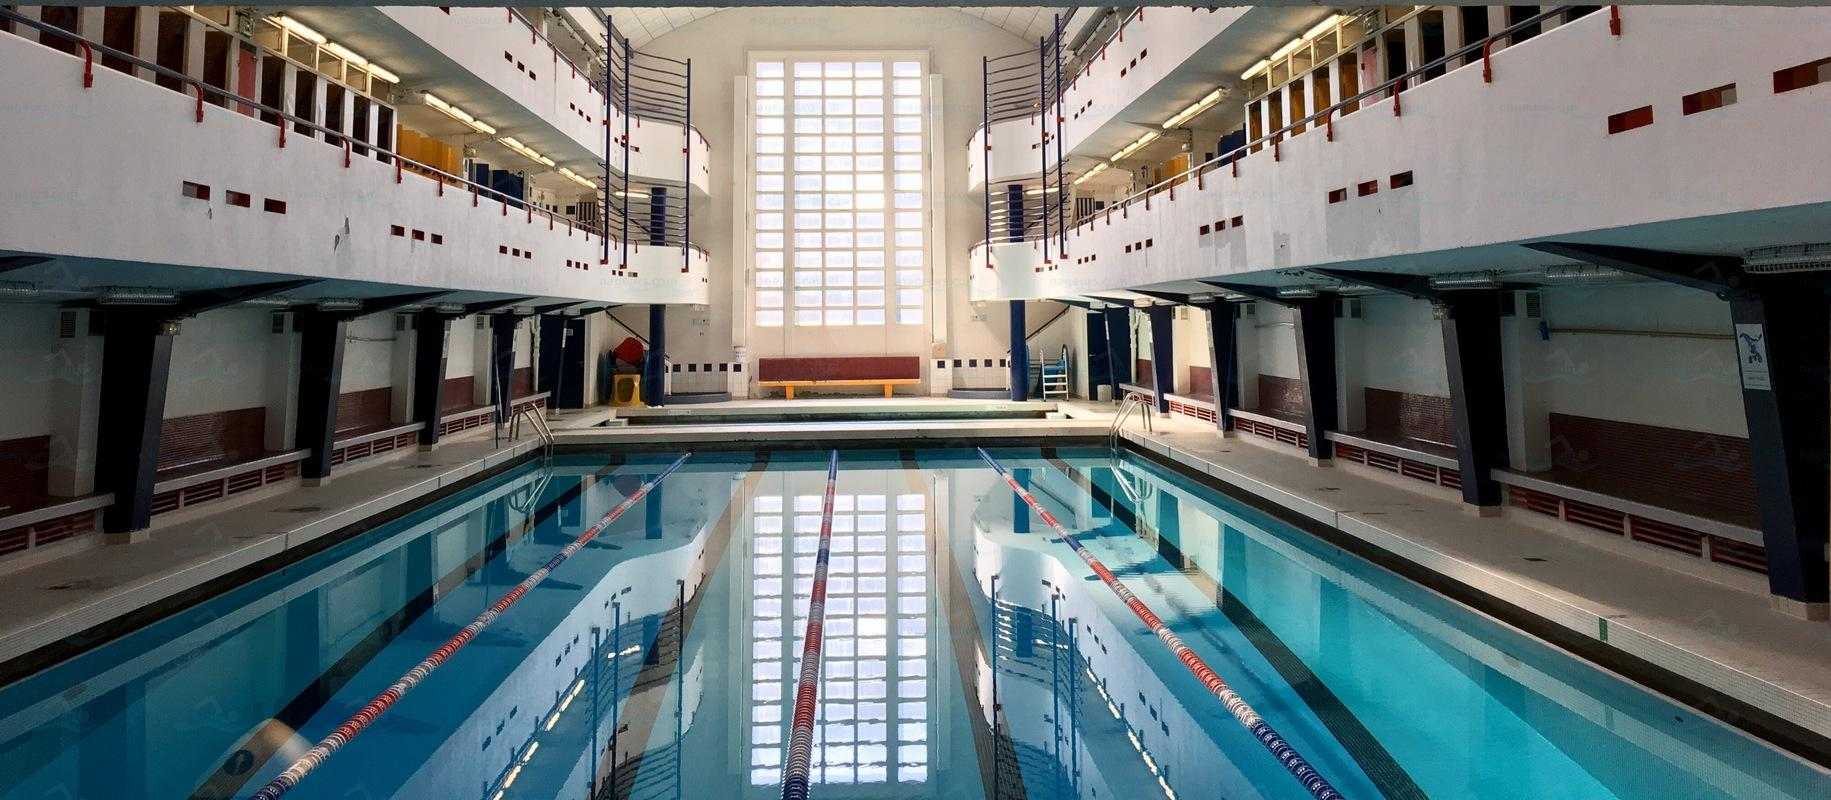 Le guide des 65 piscines de paris for Champerret piscine